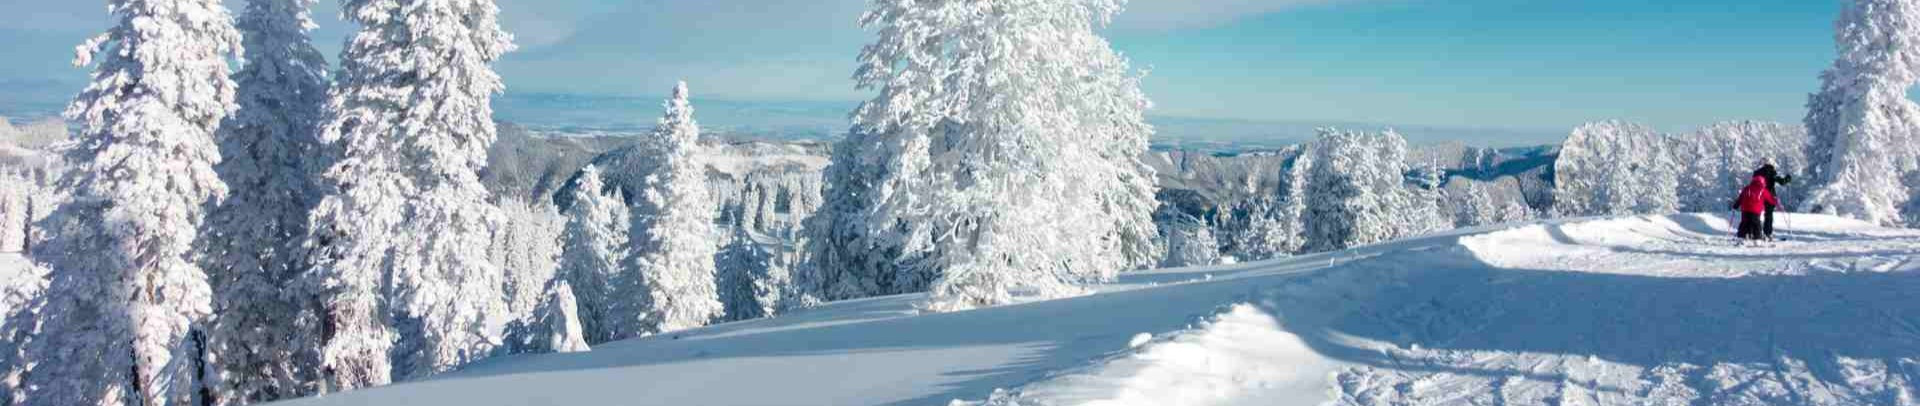 Winterwandern%20Winterlandschaft_edited.